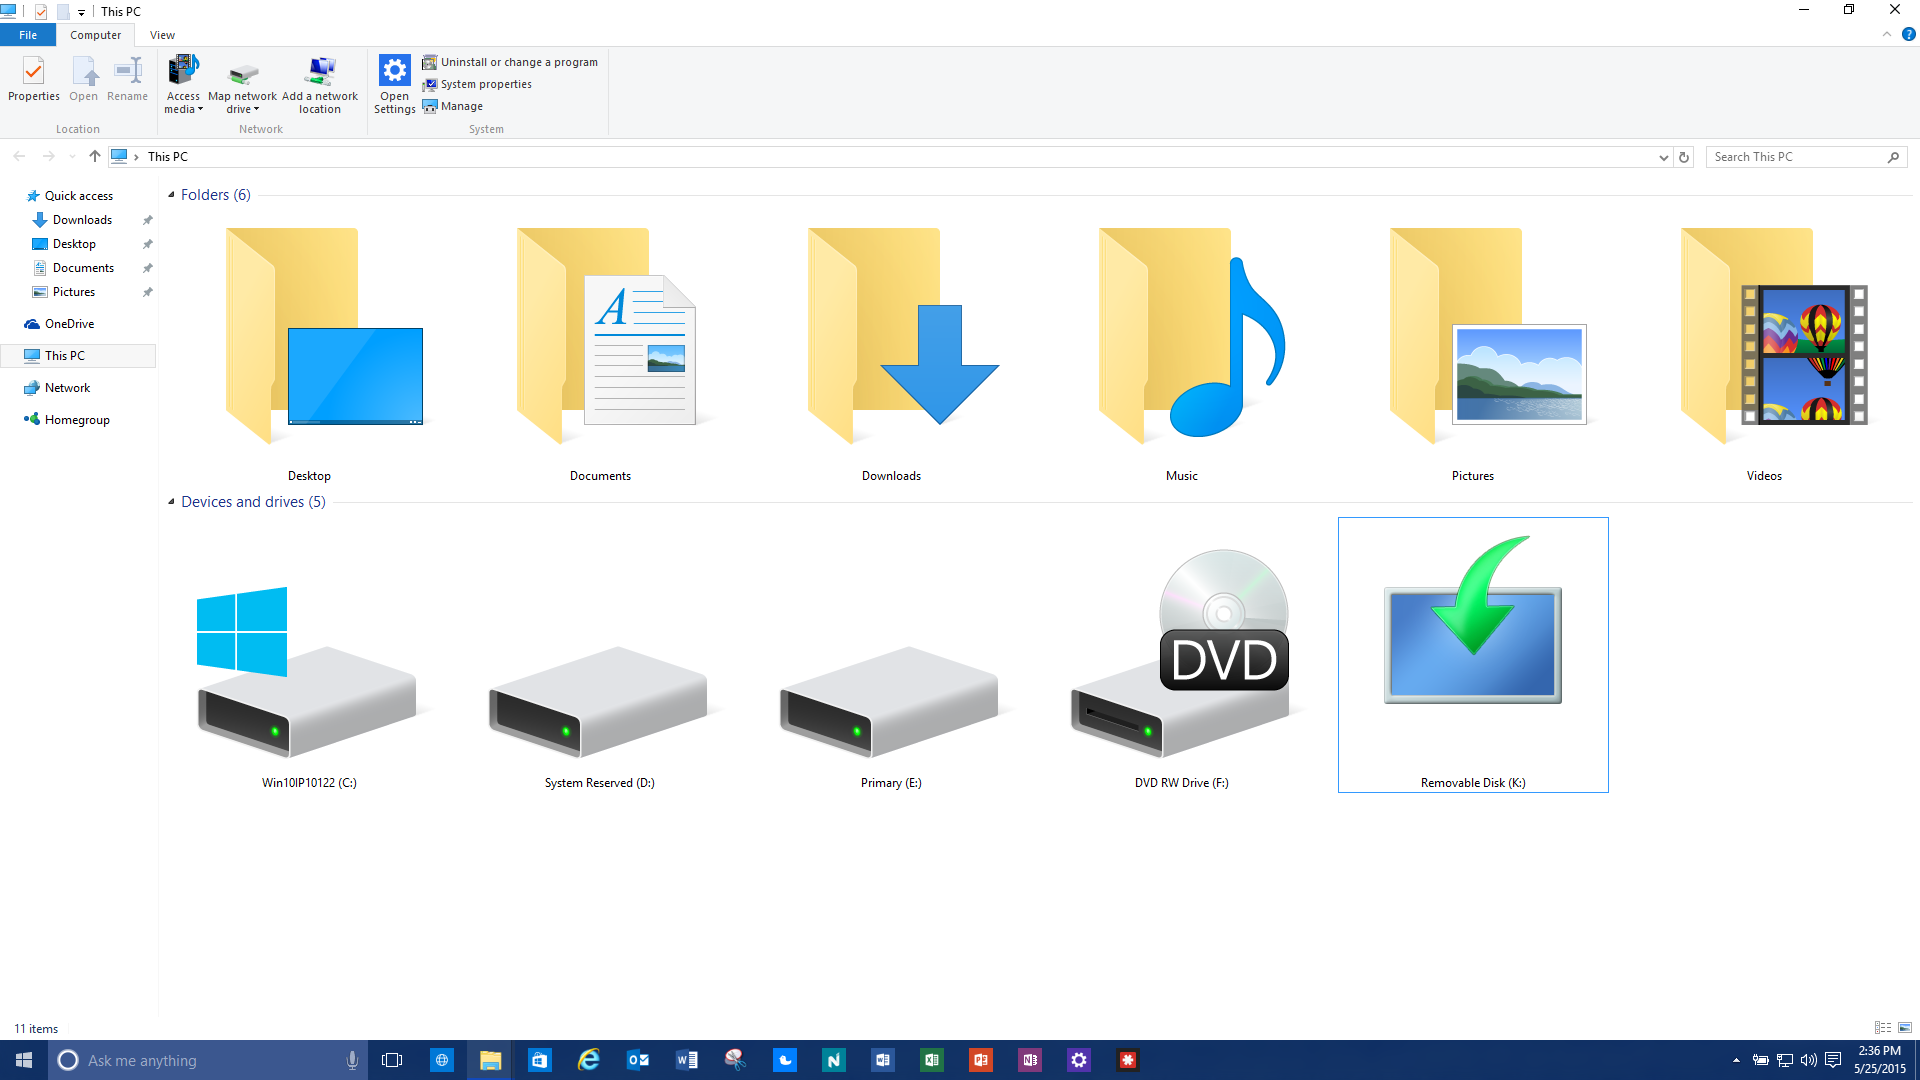 microsoft office document imaging download windows 10